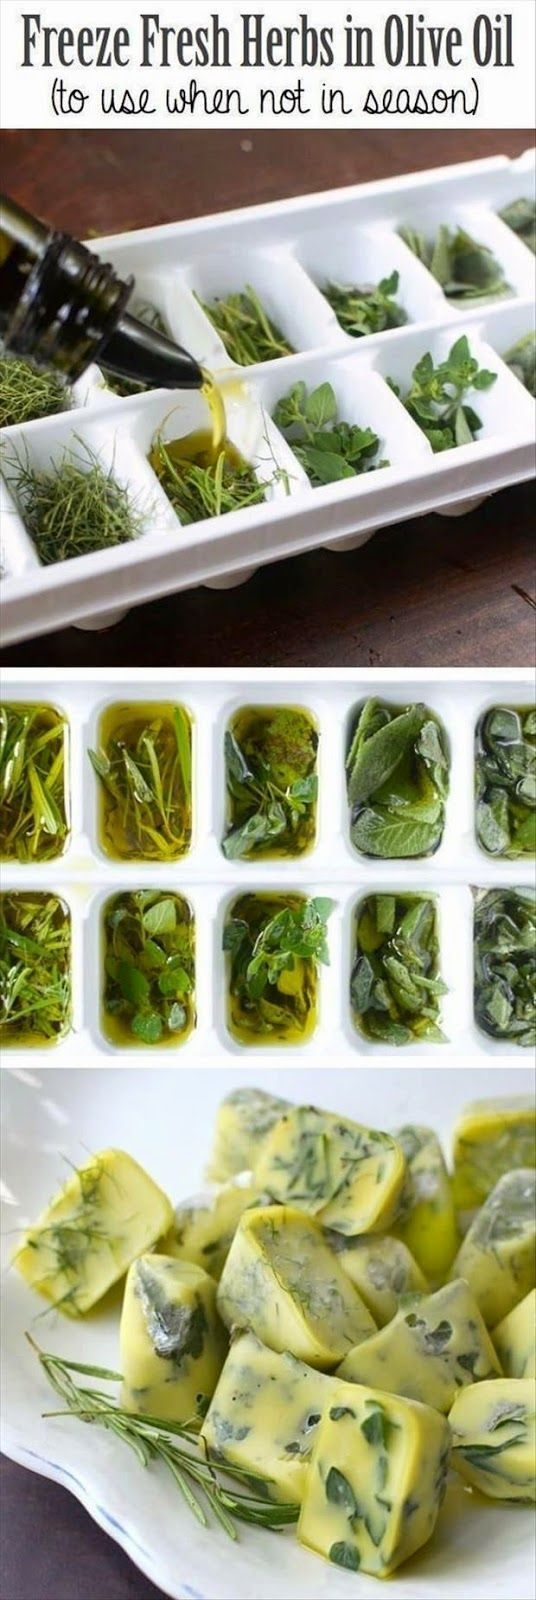 Preserve Fresh Herbs by Freezing in Olive Oil